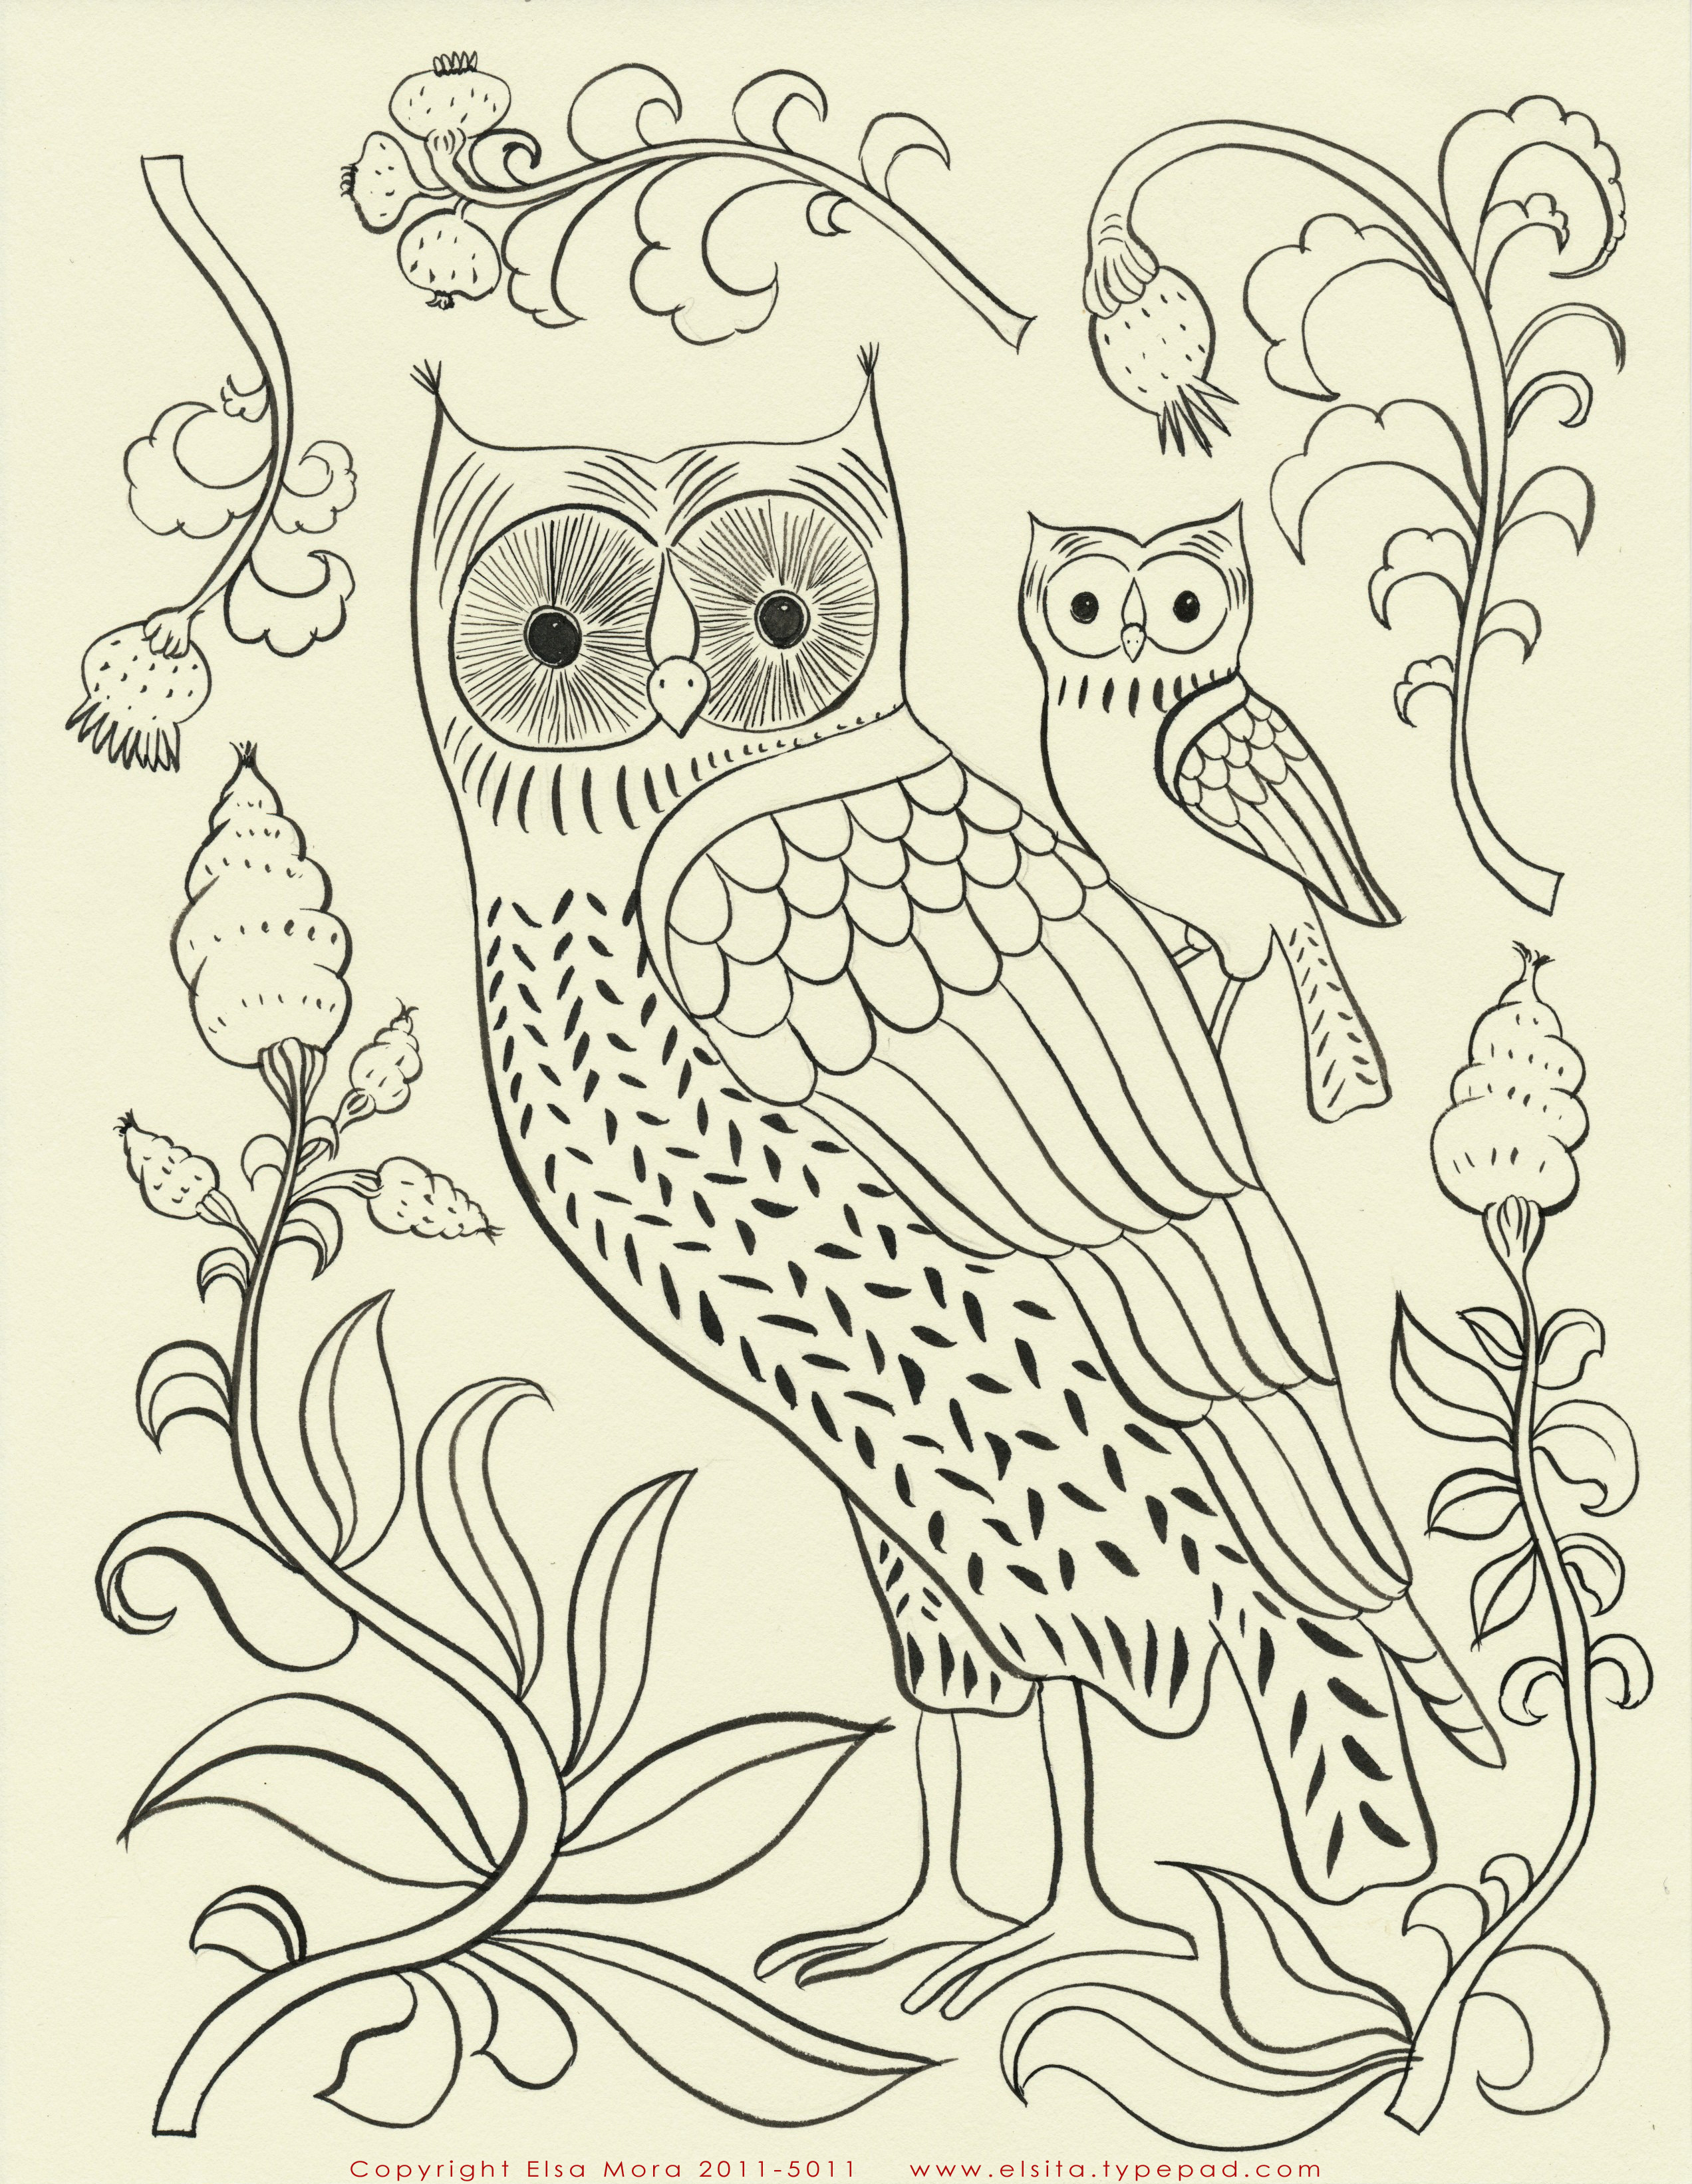 Embroidery Bird Patterns Elsa Mora Two Free Embroidery Patterns For You